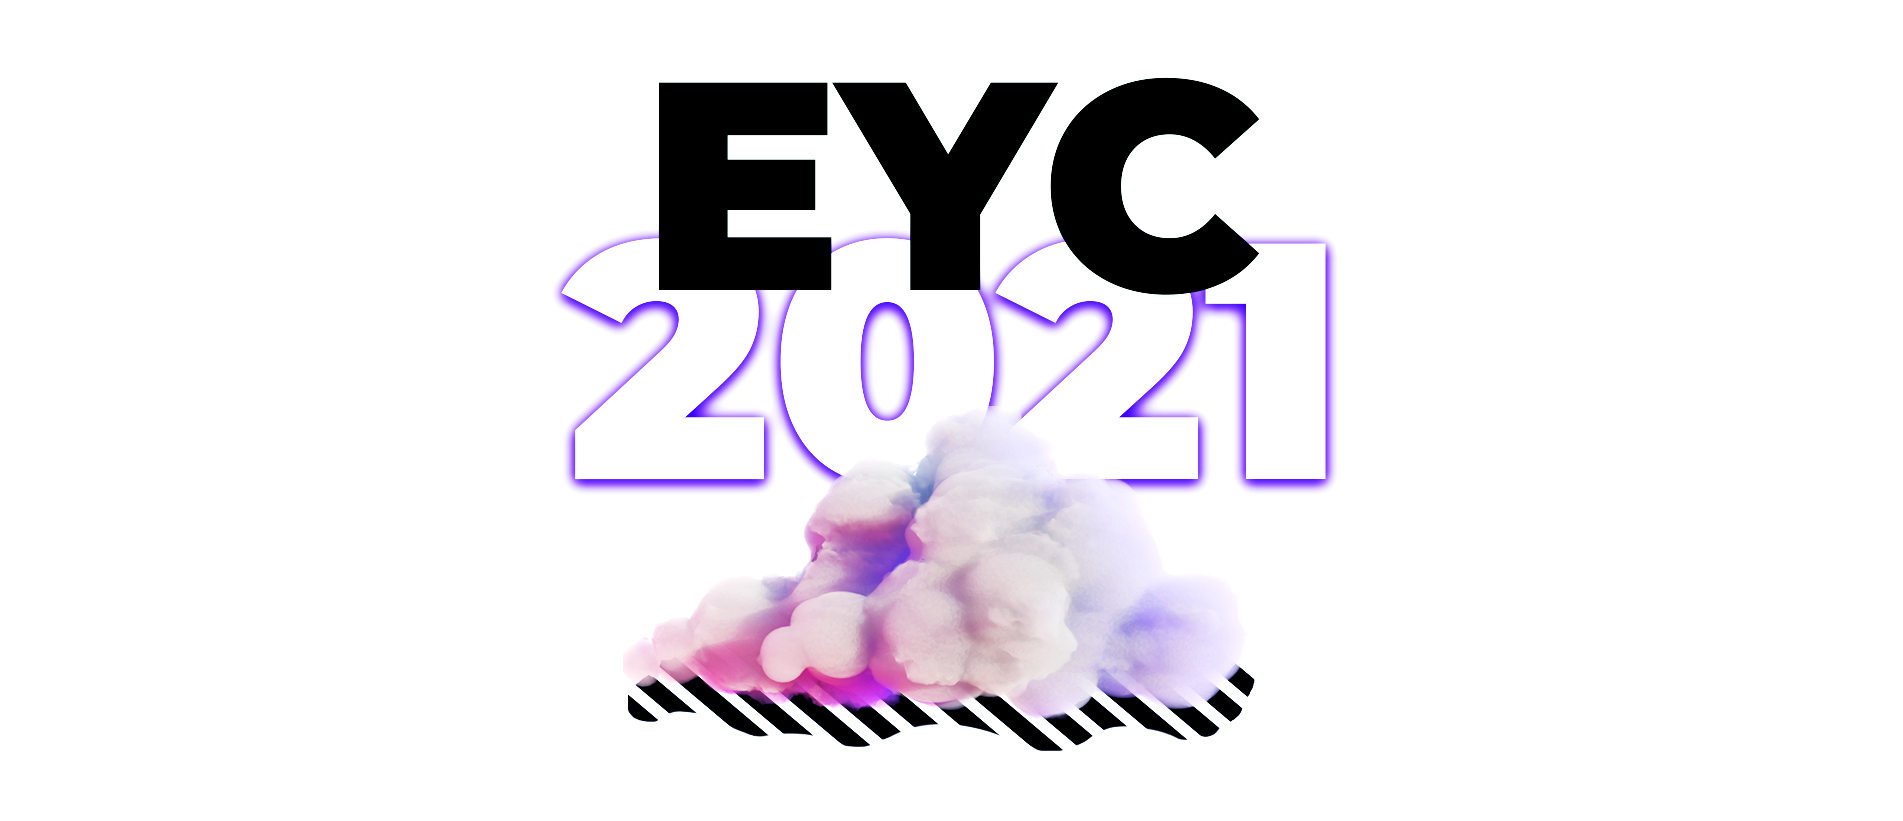 EMMANUIL YOUTH CONFERENCE 2021